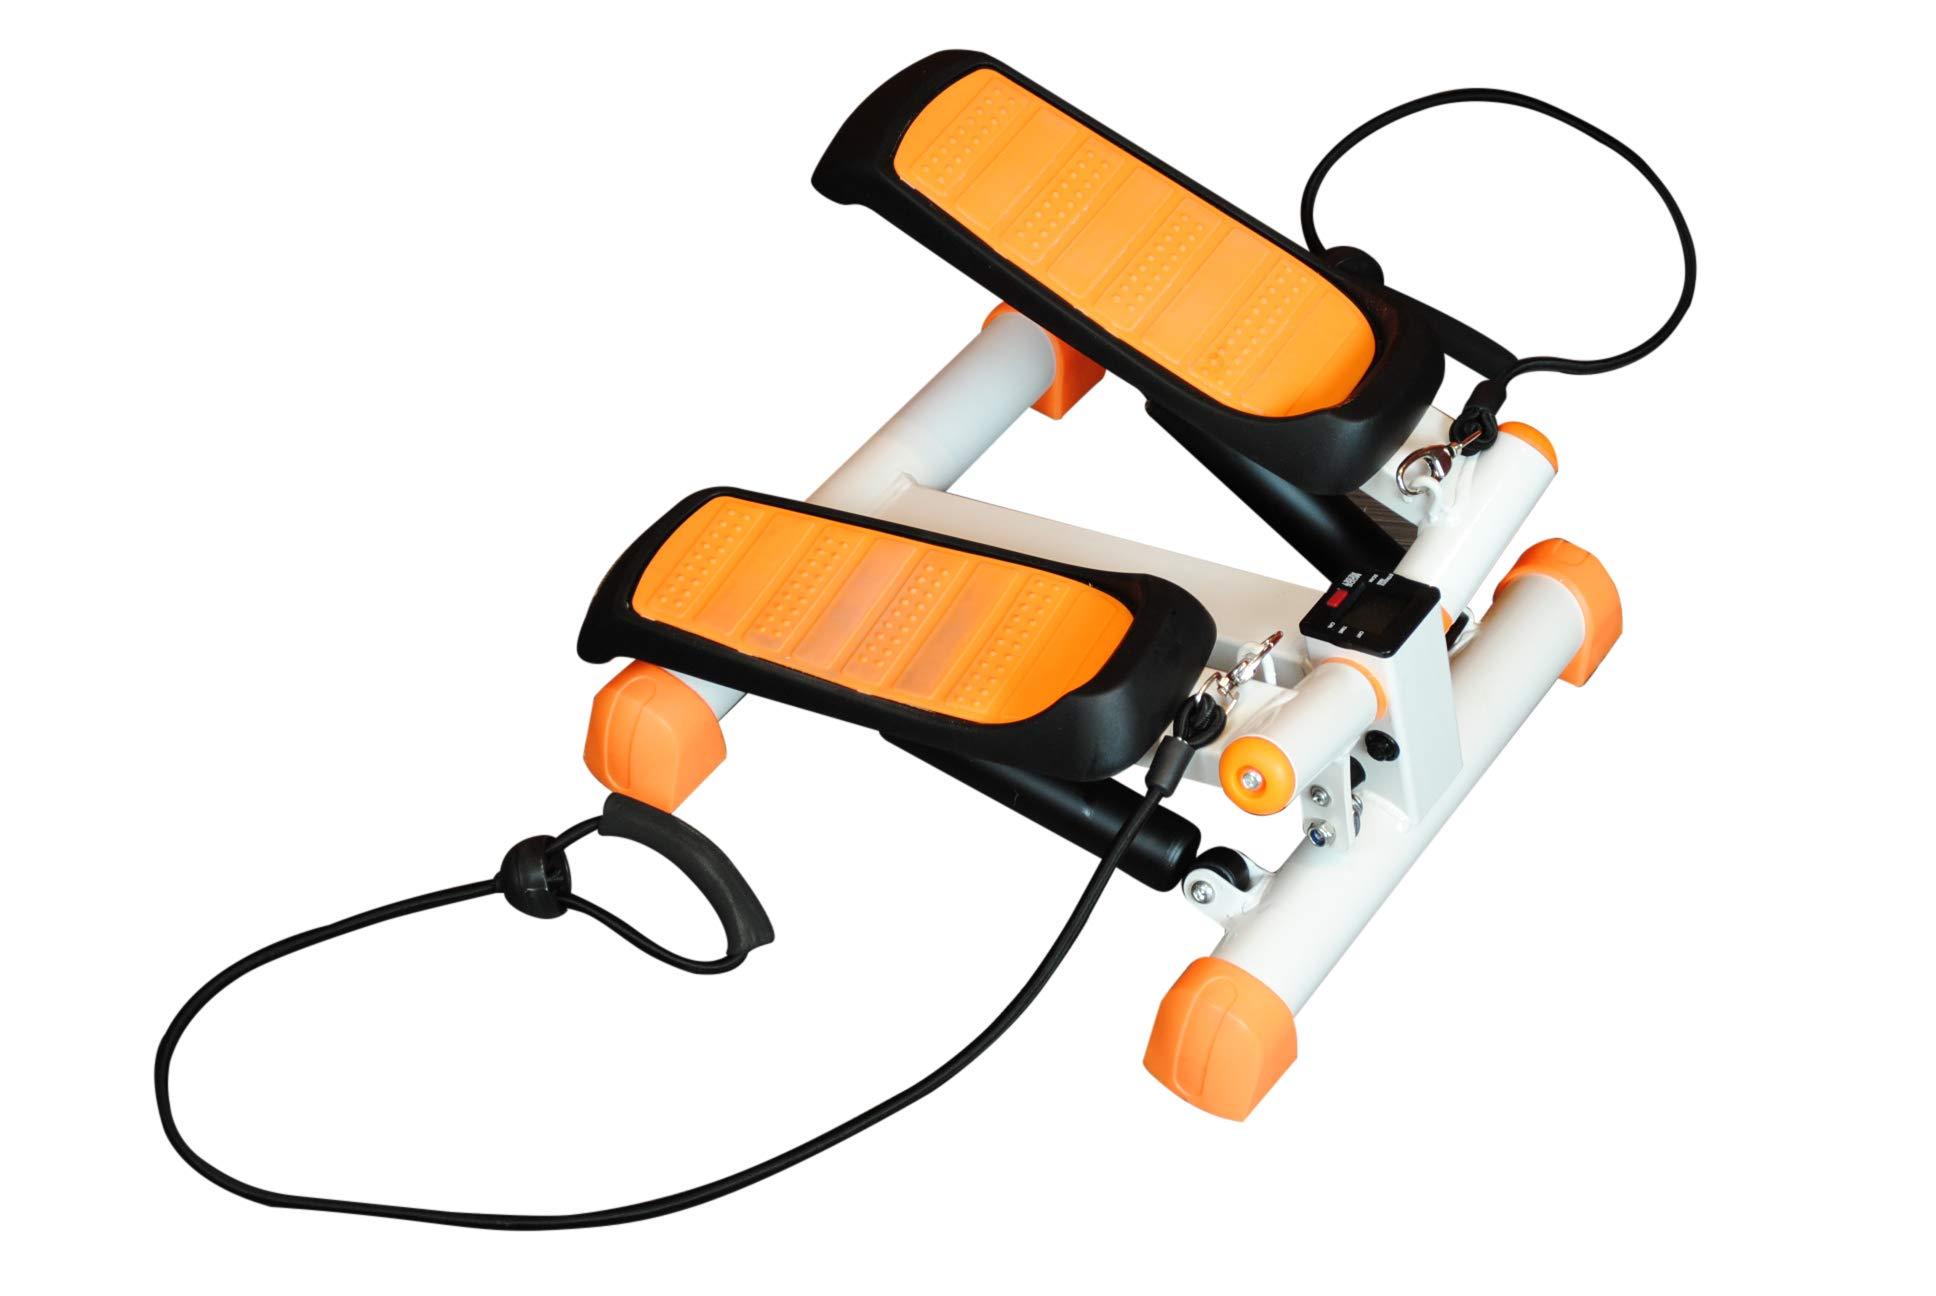 Twist Fitness Stepper Step Machine with Resistance Bands for Fitness & Exercise by Twister Step (Image #1)